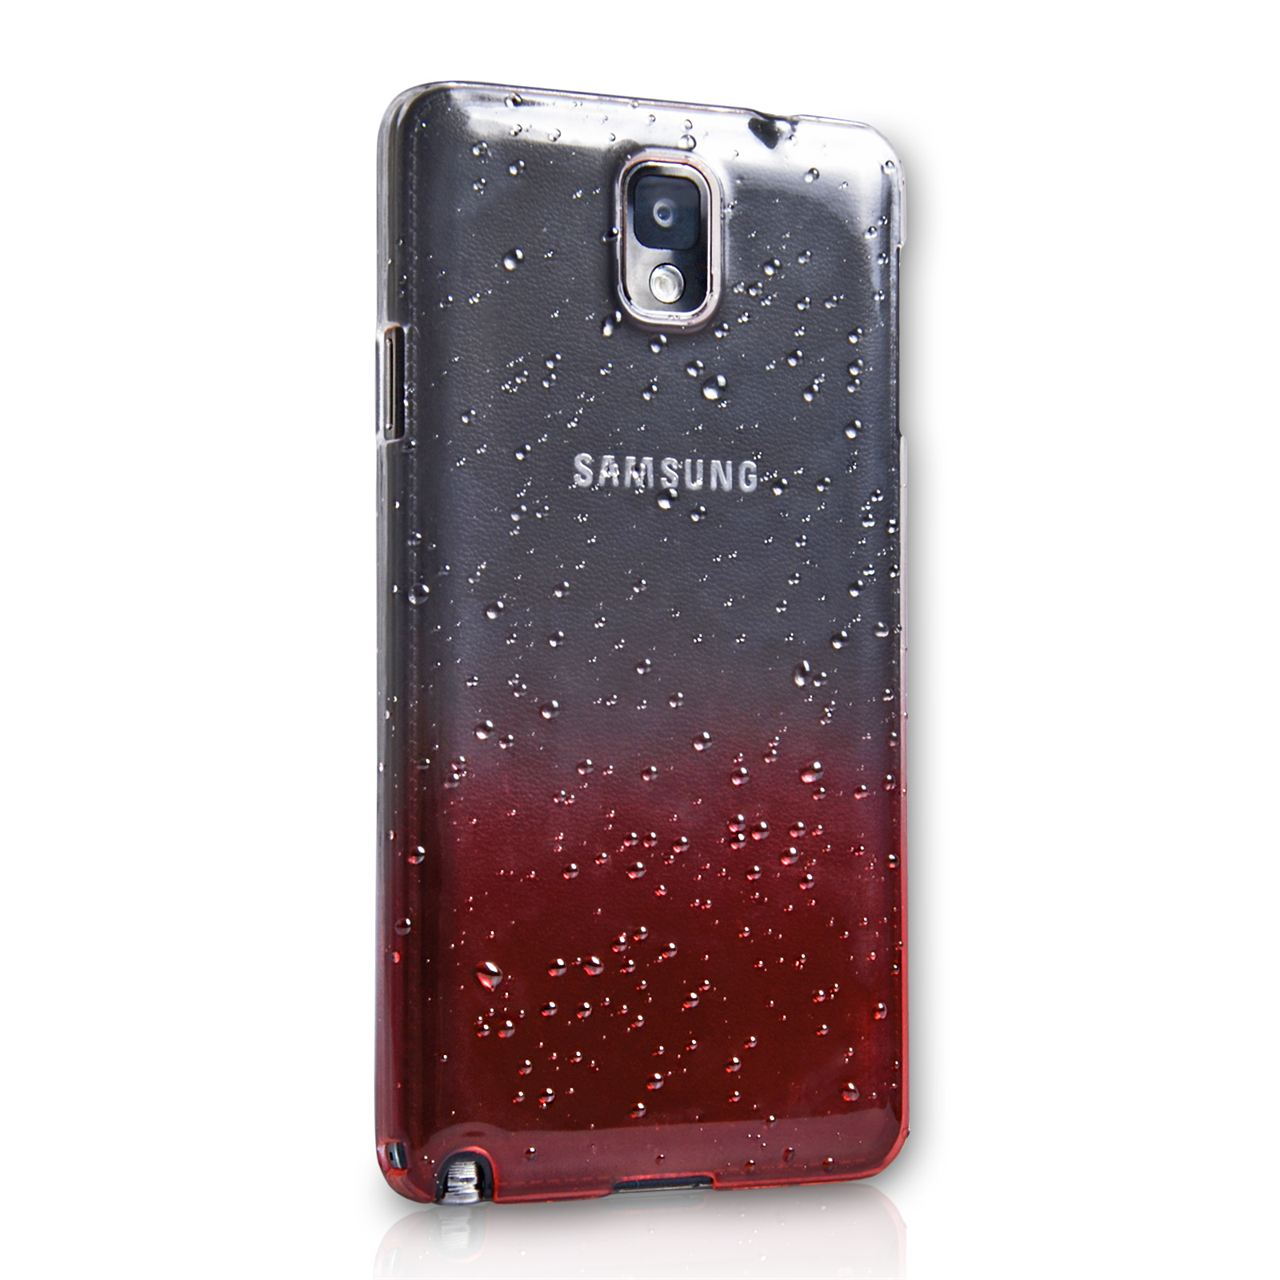 YouSave Accessories Samsung Galaxy Note 3 Waterdrop Hard Case - Red